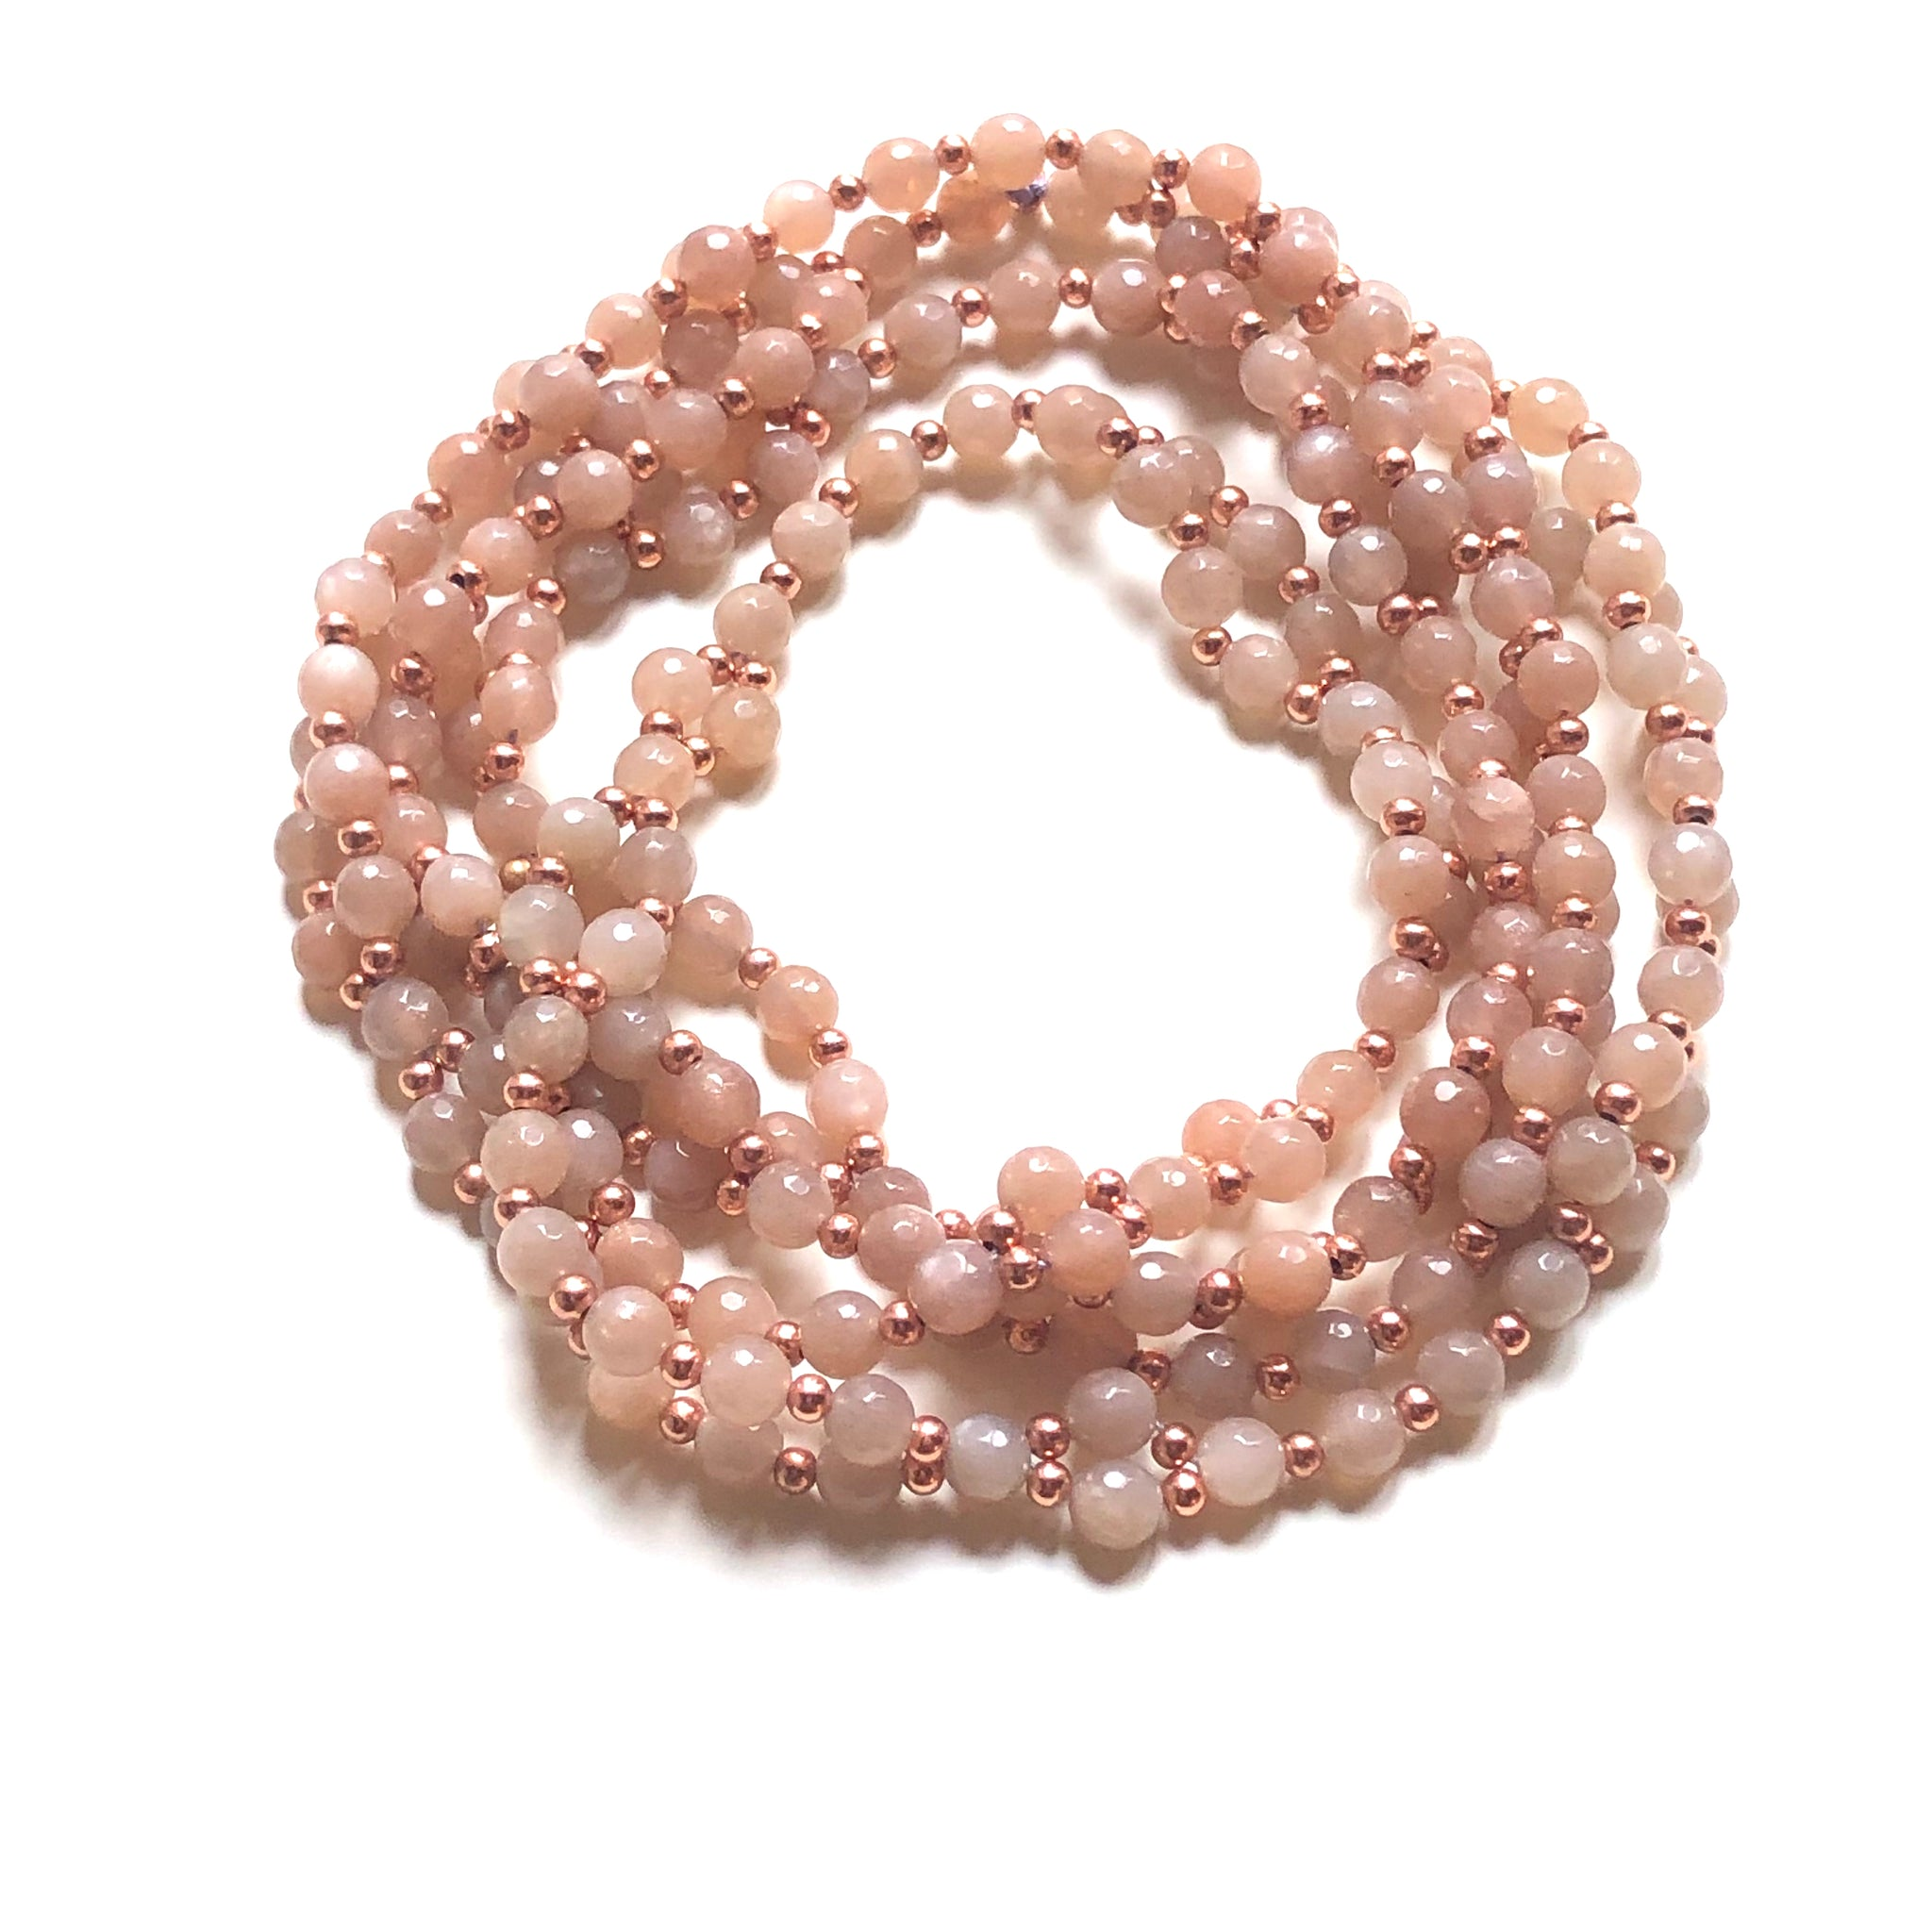 Tantric Mala necklace 6 mm rose moonstone